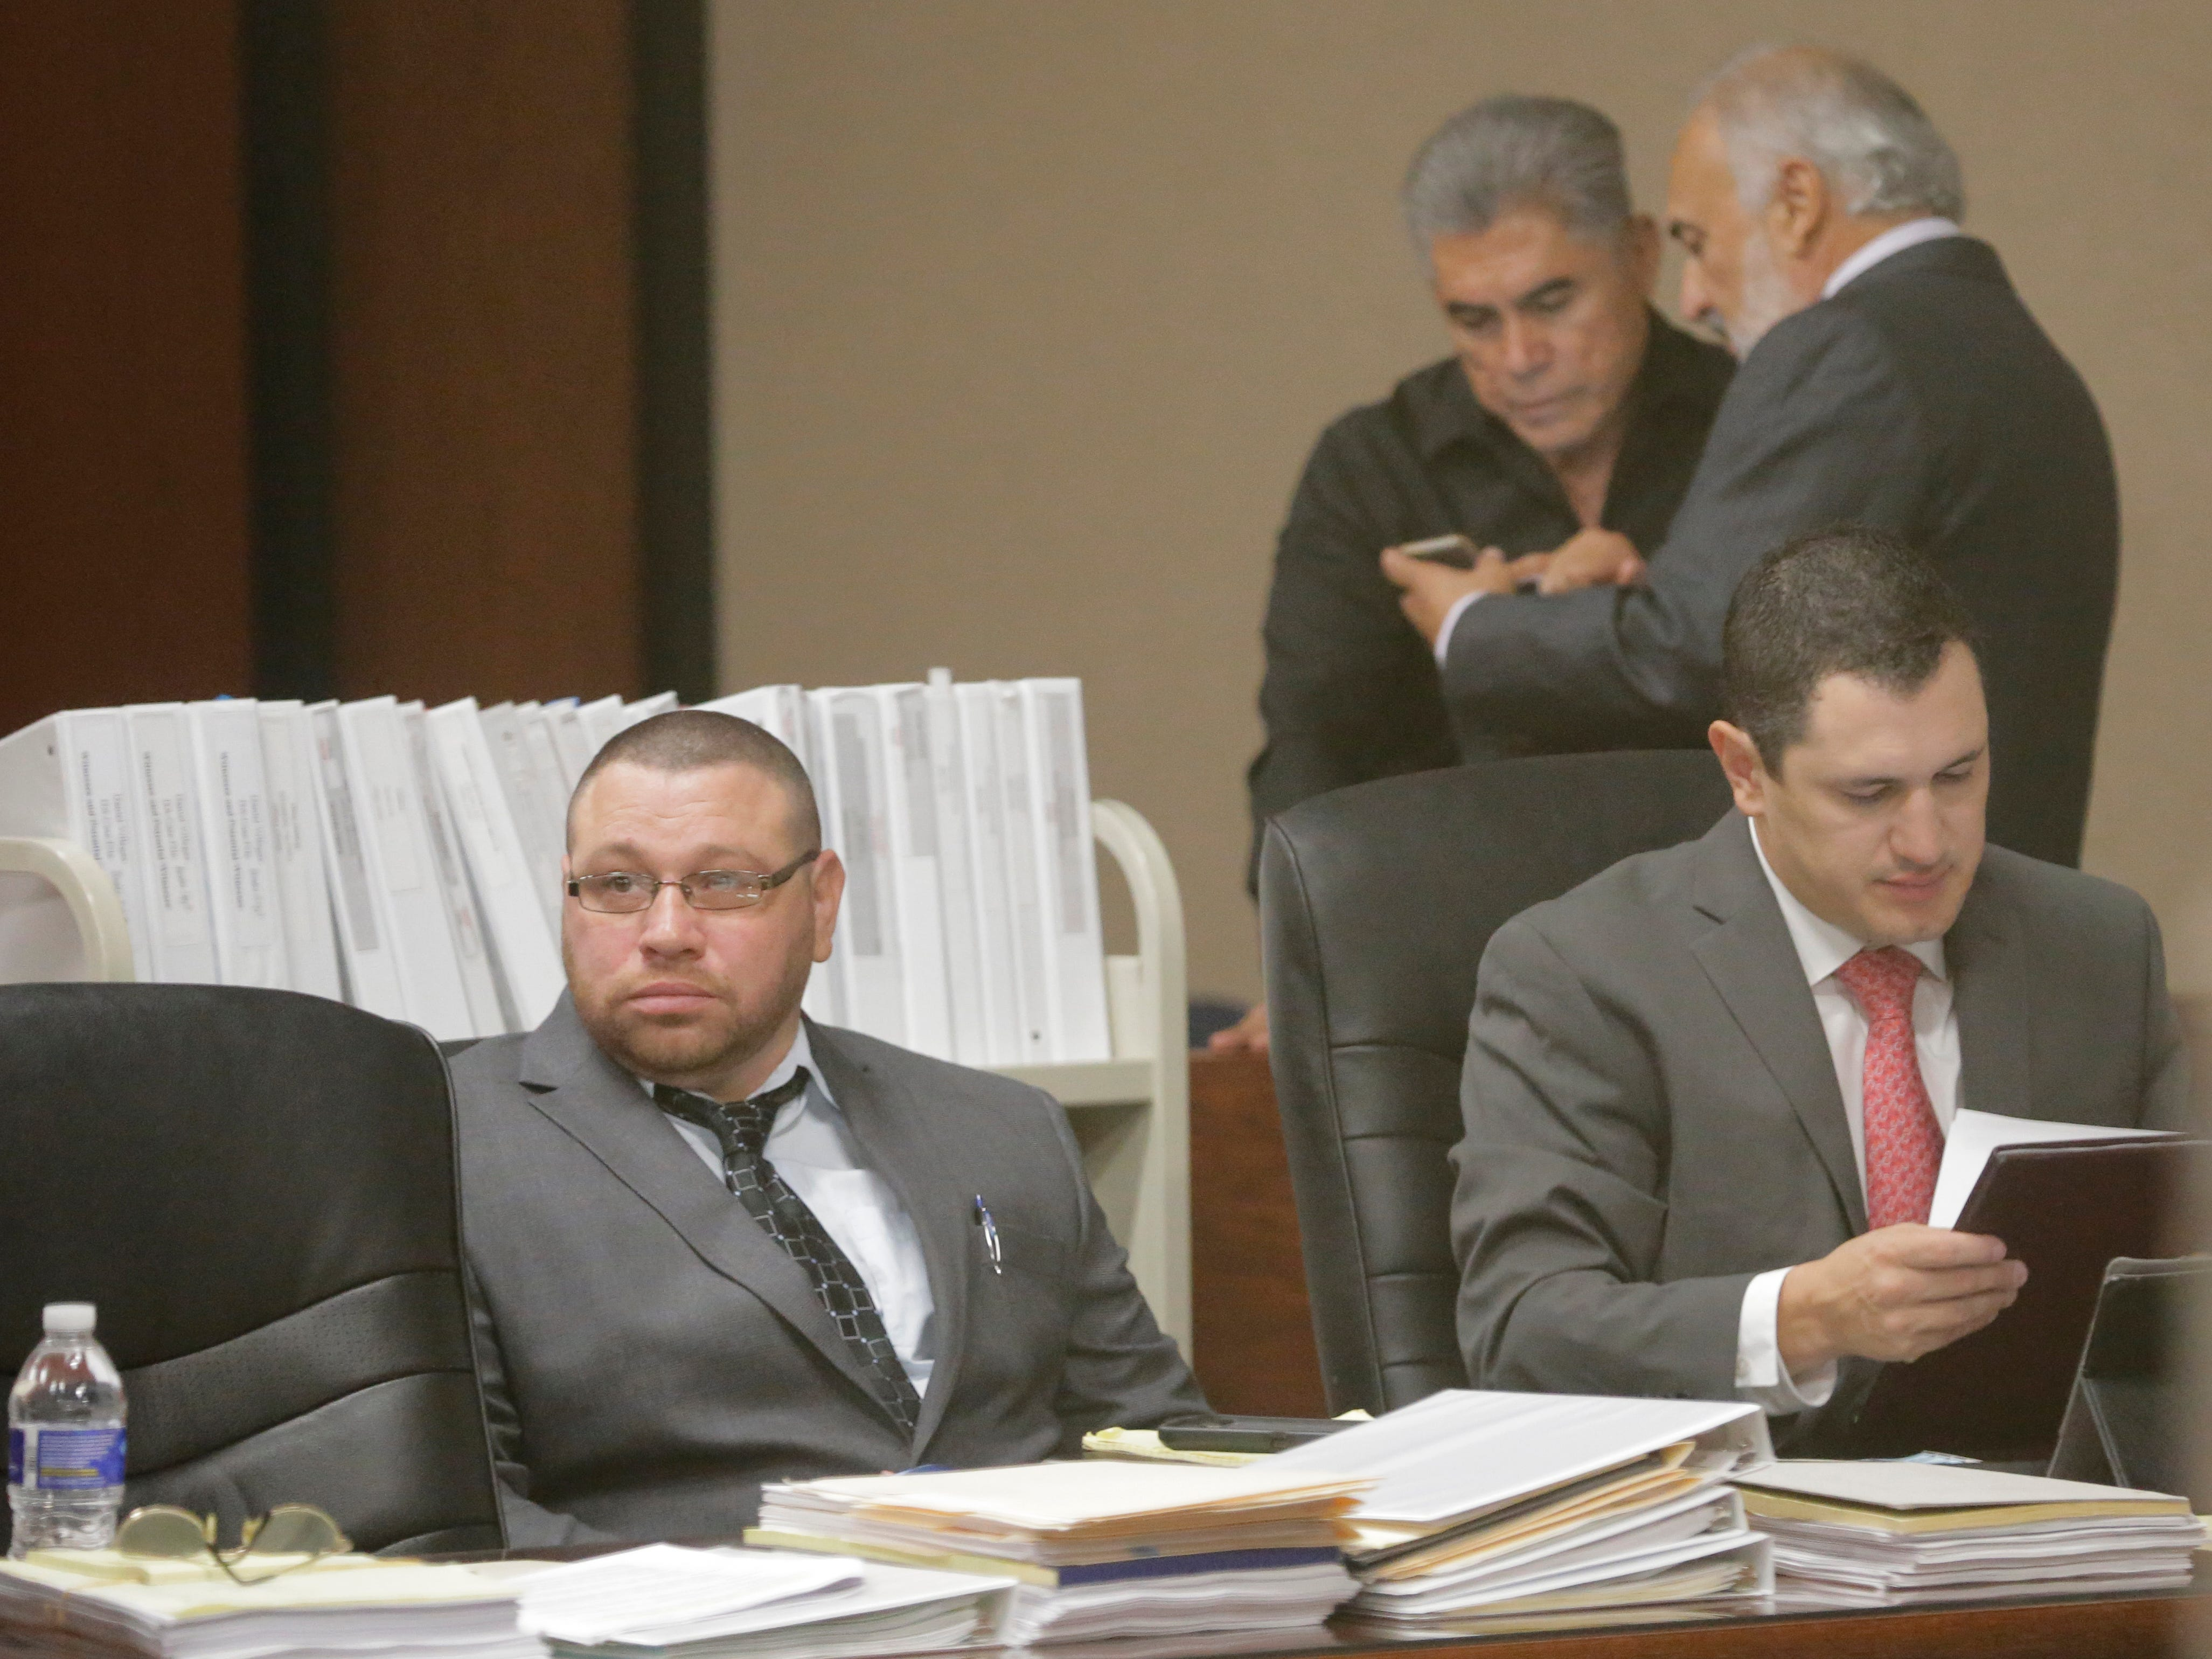 """Daniel Villegas (l) sits with one of his attorneys during opening day testimony in his third trial. Villegas is charged with Capital Murder in connection in the 1993 deaths of Armando """"Mando"""" Lazo and Bobby England. Villegas, who was 16 years old at the time, was allegedly a member of a street gang that shot at four teens, fatally striking Lazo and England on April 10, 1993. Lead attorney Joe Spencer stand sin the background with local businessman John Mimbela Sr. who has become a leading voice in the efforts to get Villegas this third trial and released from prison."""